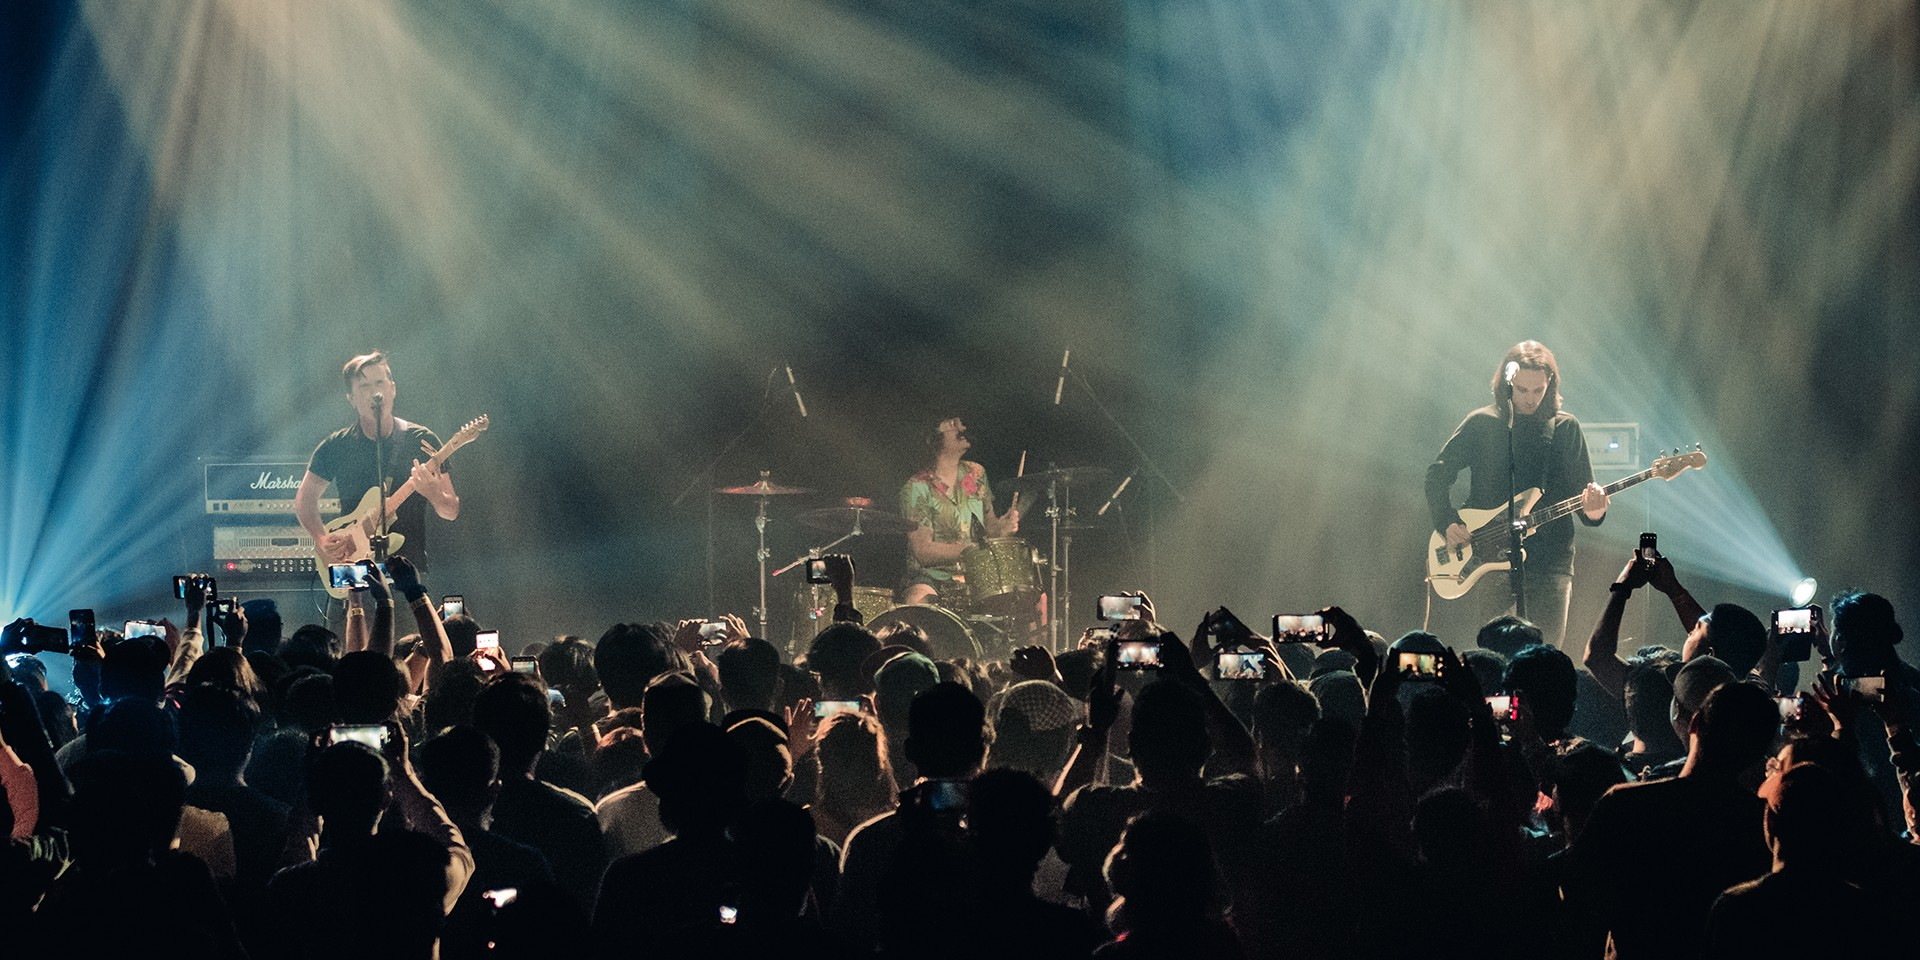 Tiny Moving Parts bring joy to their Filipino audience at Manila concert – photo gallery